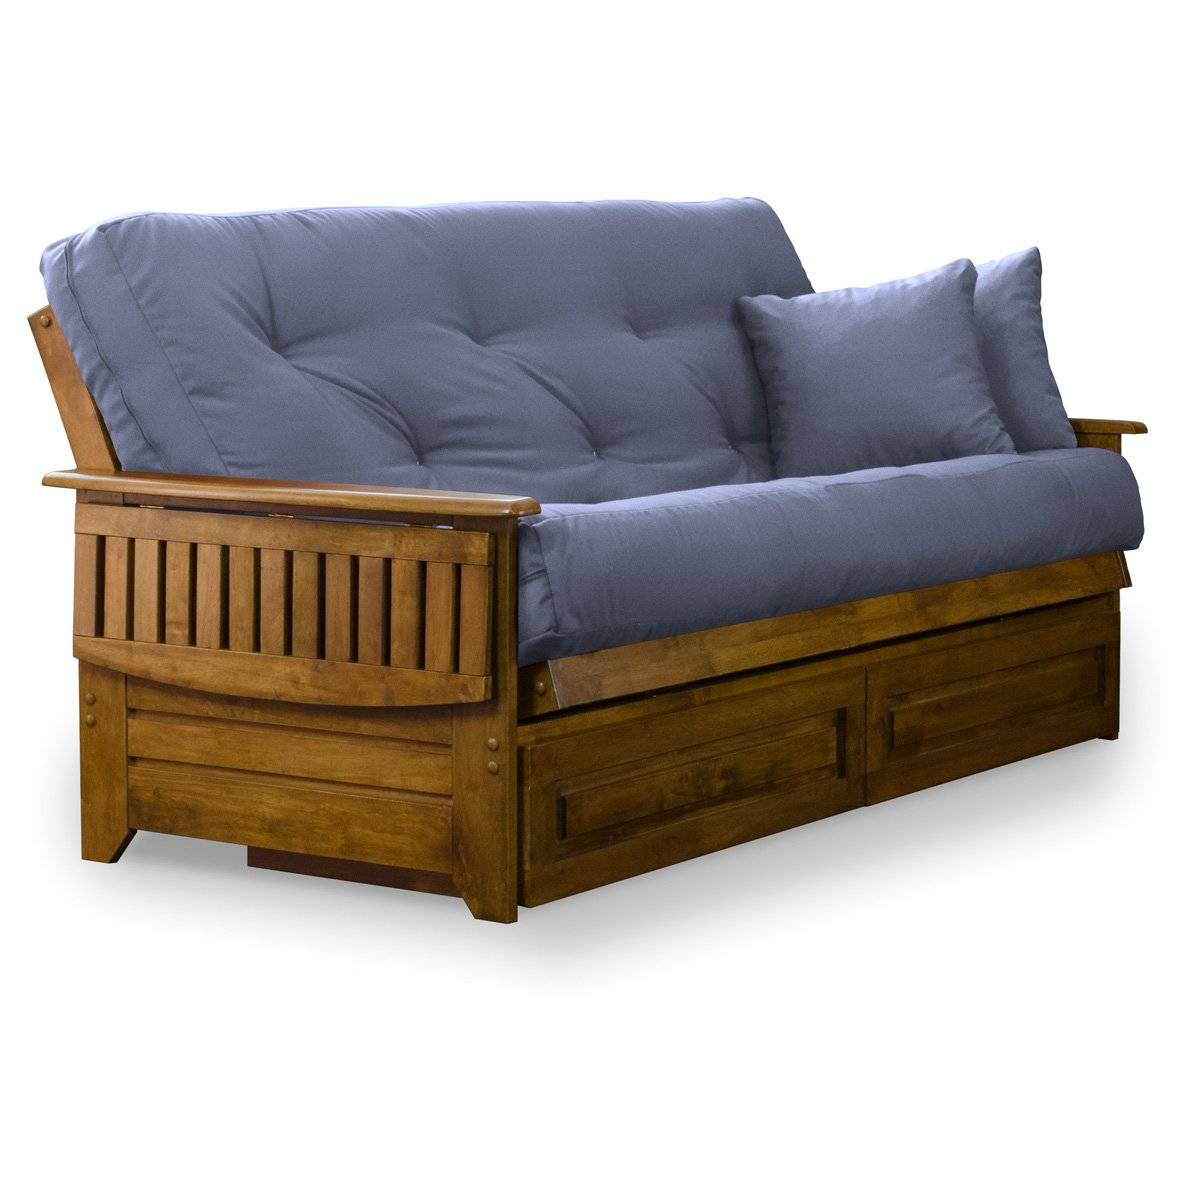 Brentwood Tray Arm Full Size Wood Futon Frame and Storage Drawers - Heritage Finish by Nirvana Futons